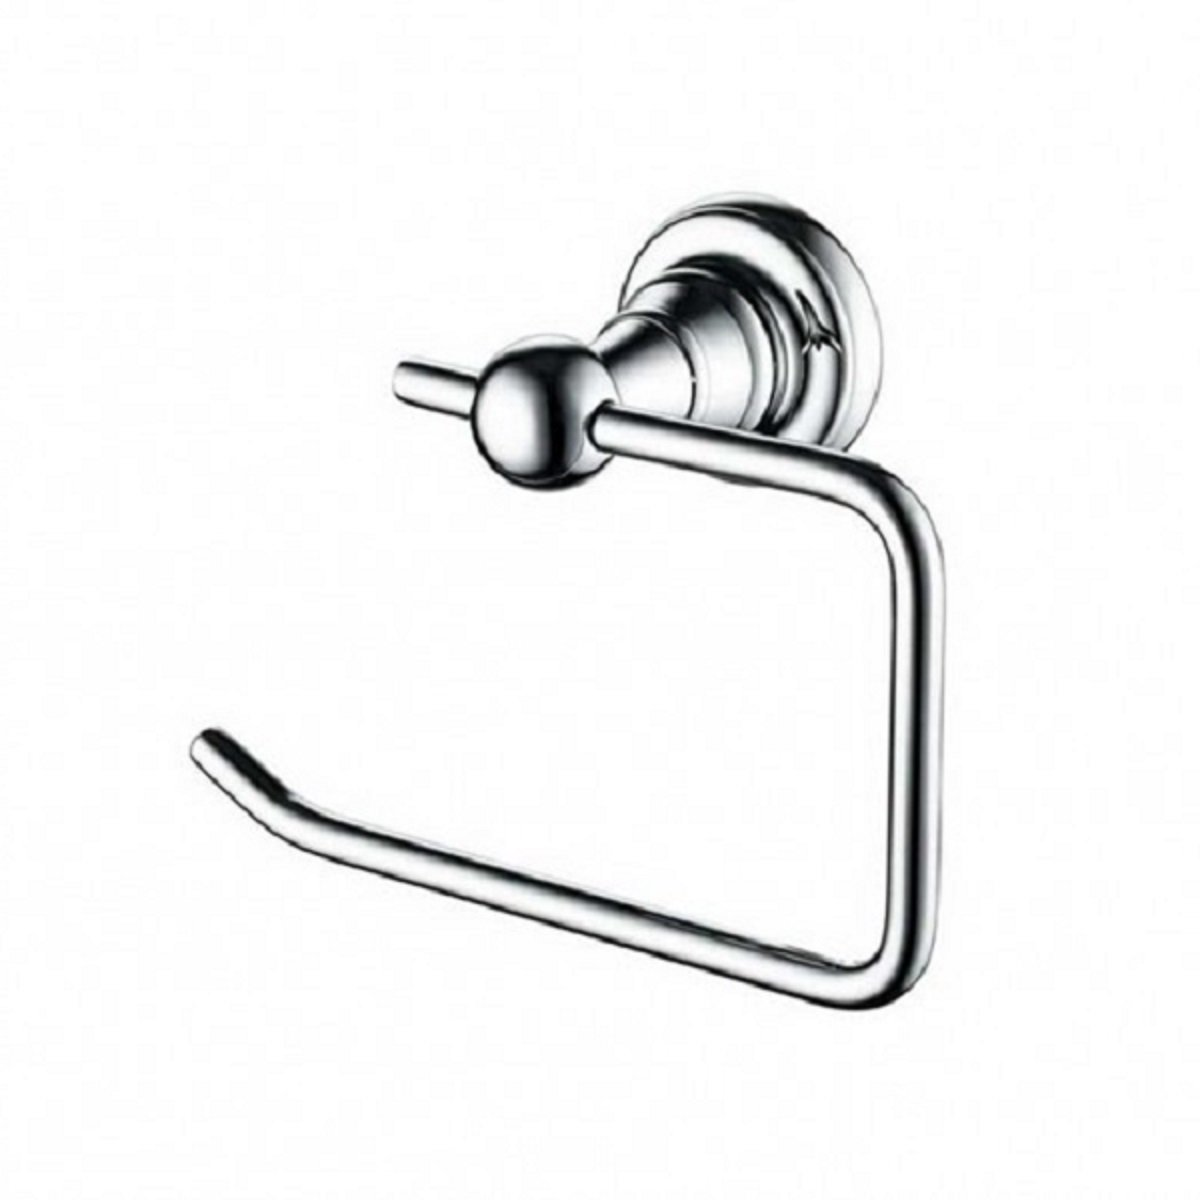 Bristan 1901 Towel Ring Brass - Chrome Plated